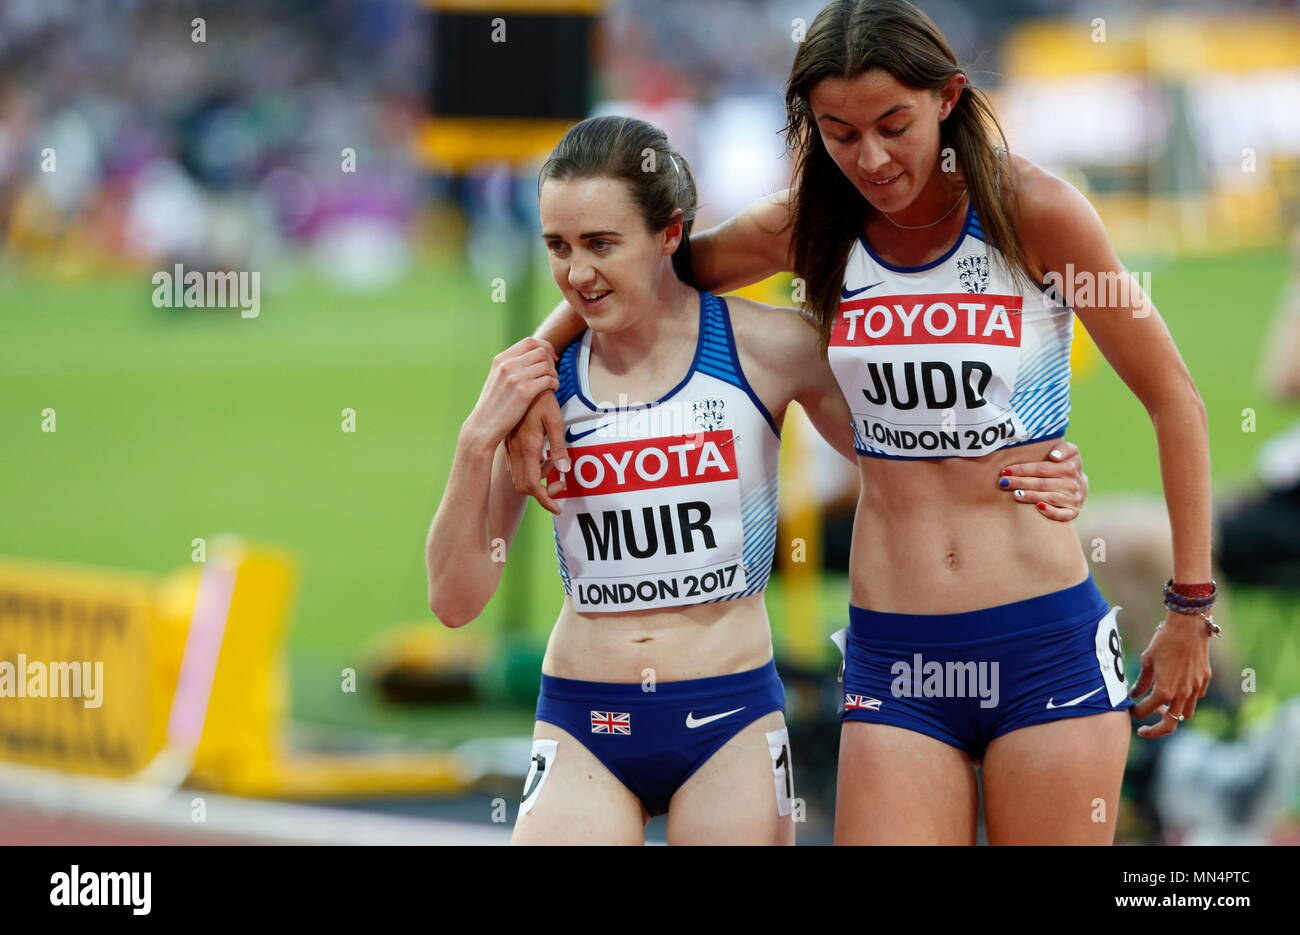 LONDON, ENGLAND - AUGUST 05: during day two of the 16th IAAF World Athletics Championships London 2017 at The London Stadium on August 5, 2017 in London, United Kingdom.  --- Image by © Paul Cunningham Stock Photo